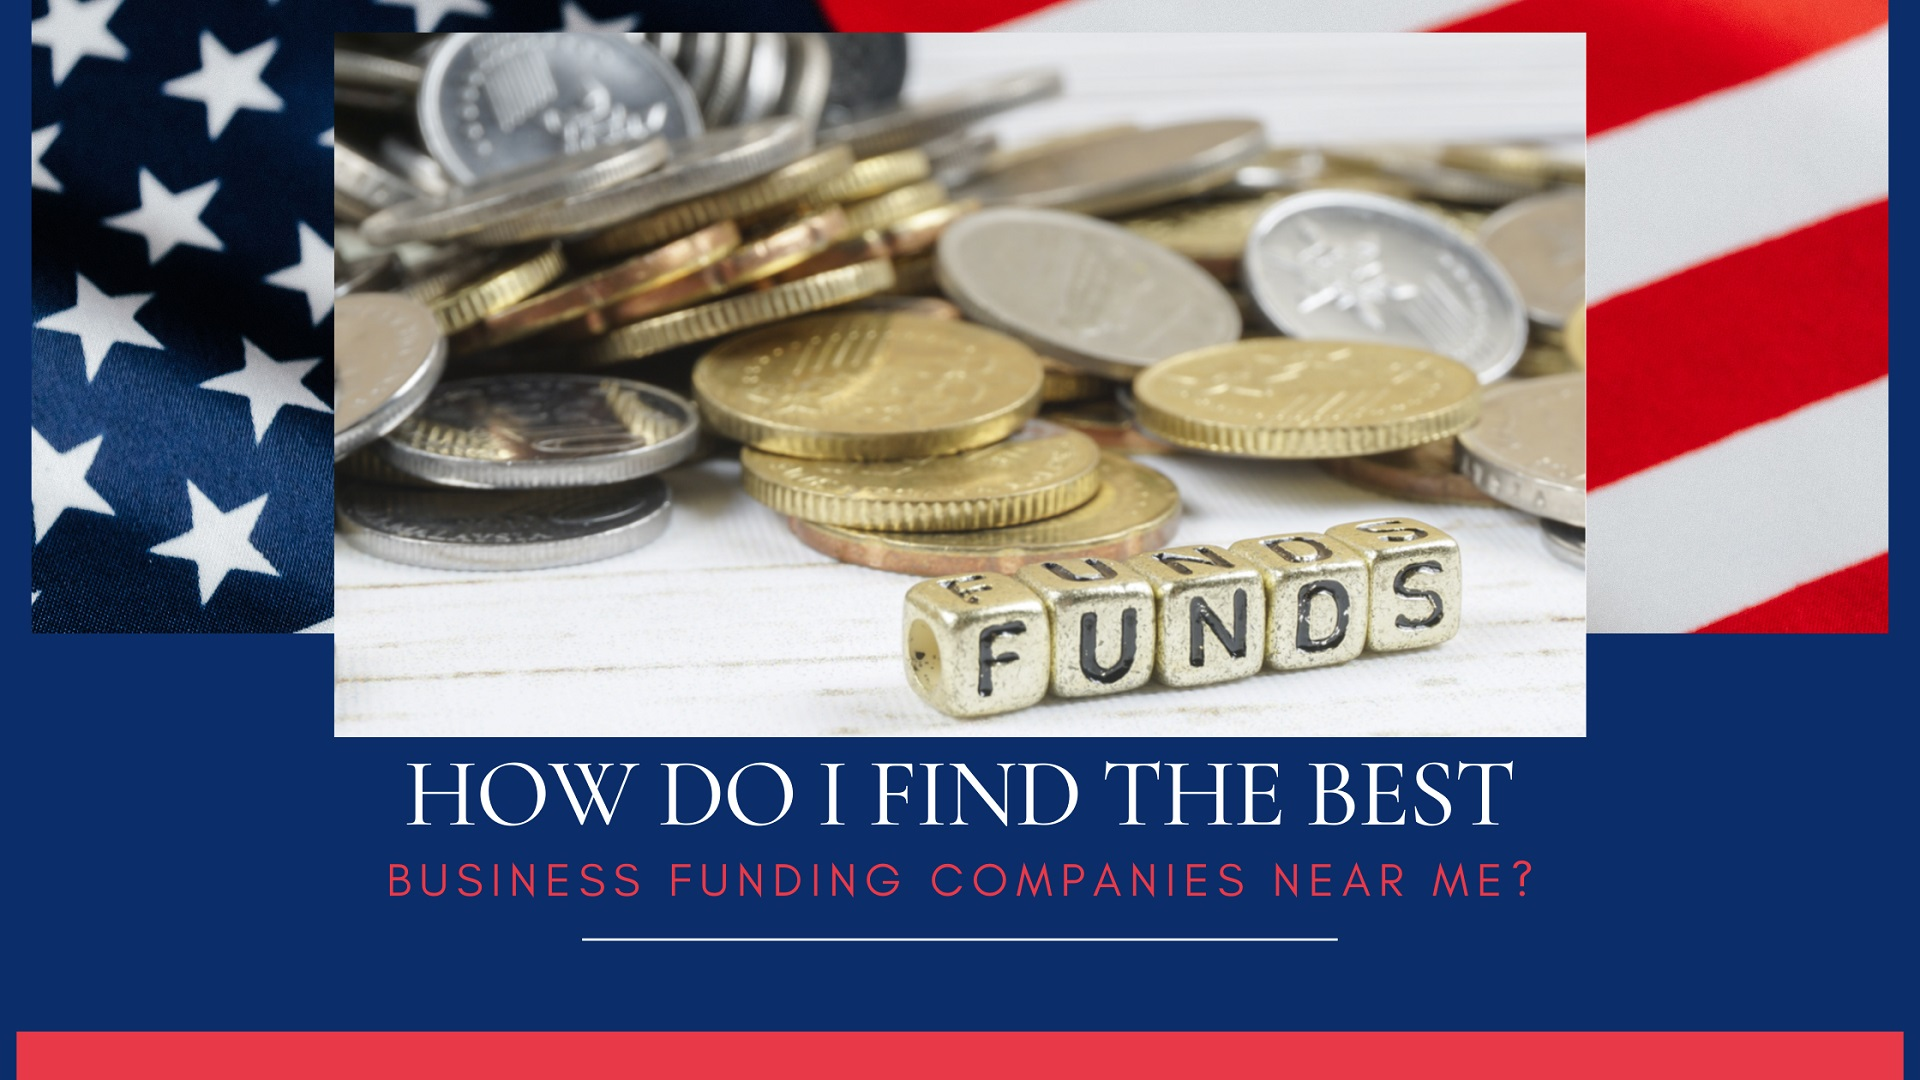 Permalink to:How do I find the best business funding companies near me?